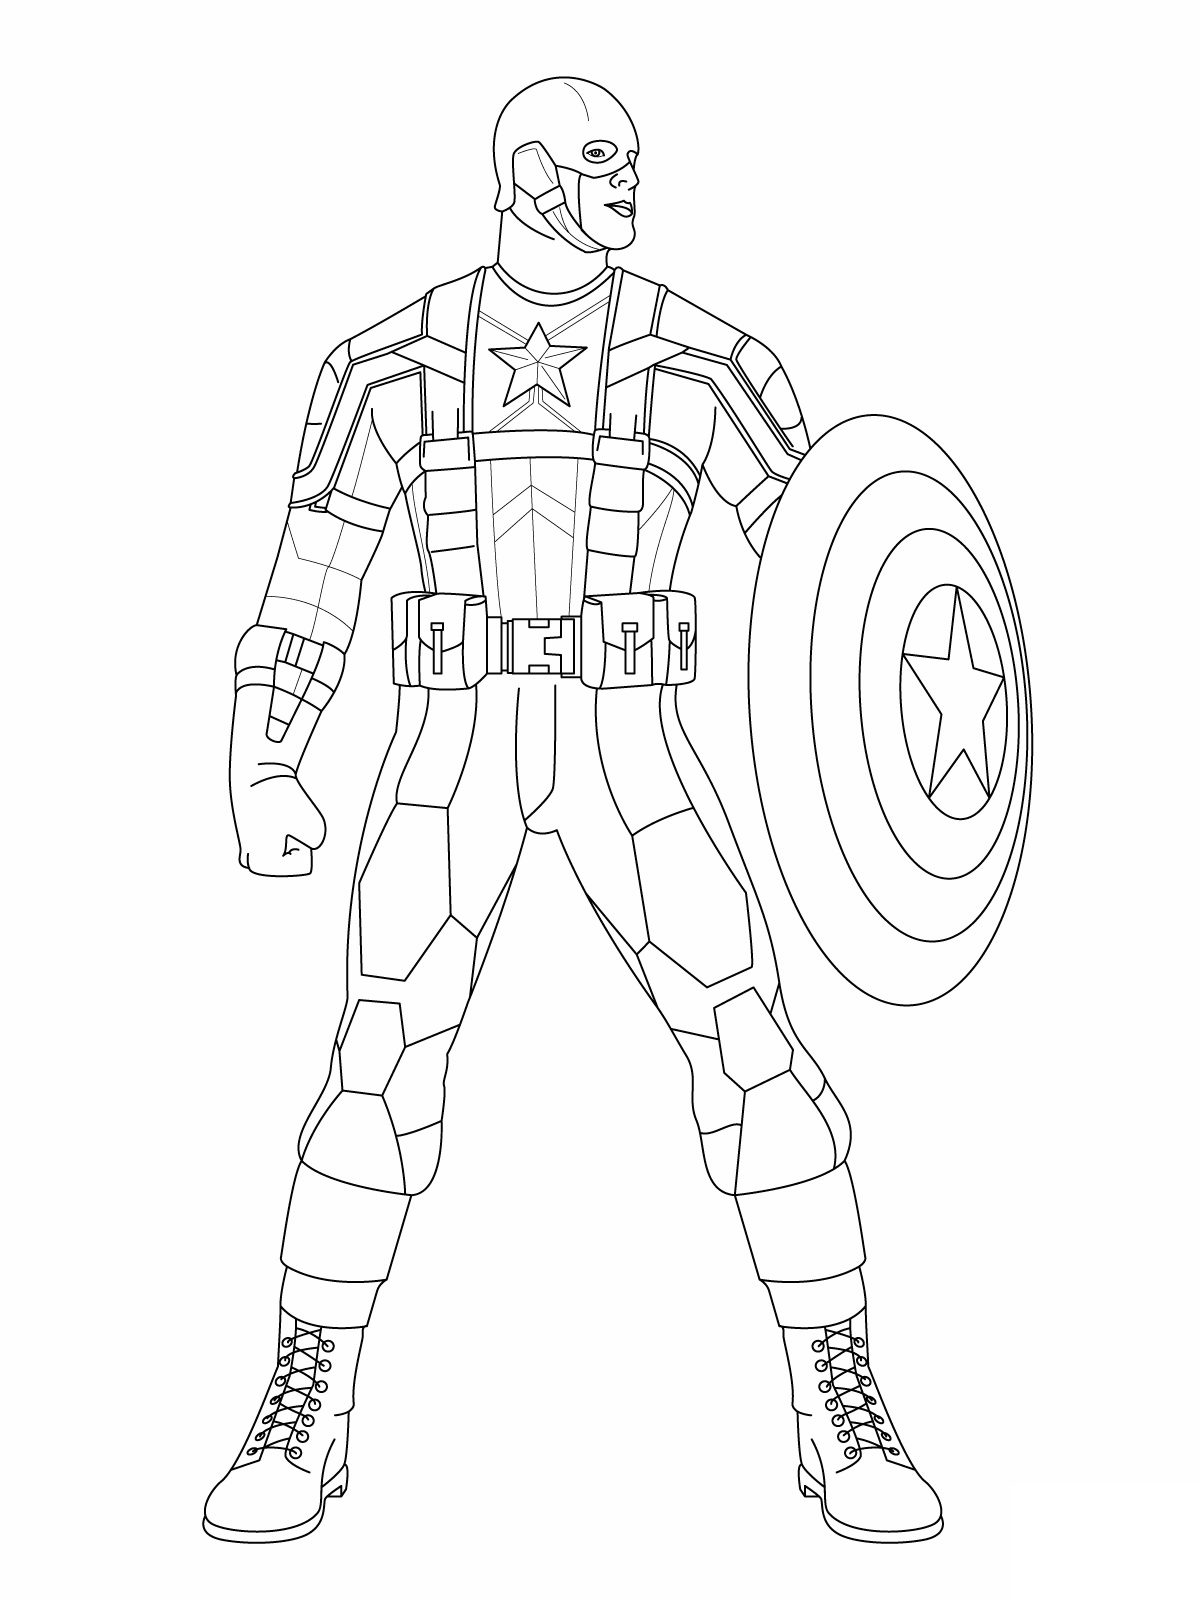 Coloring Pages Captain America Coloring Pages Printable free printable captain america coloring pages for kids photos